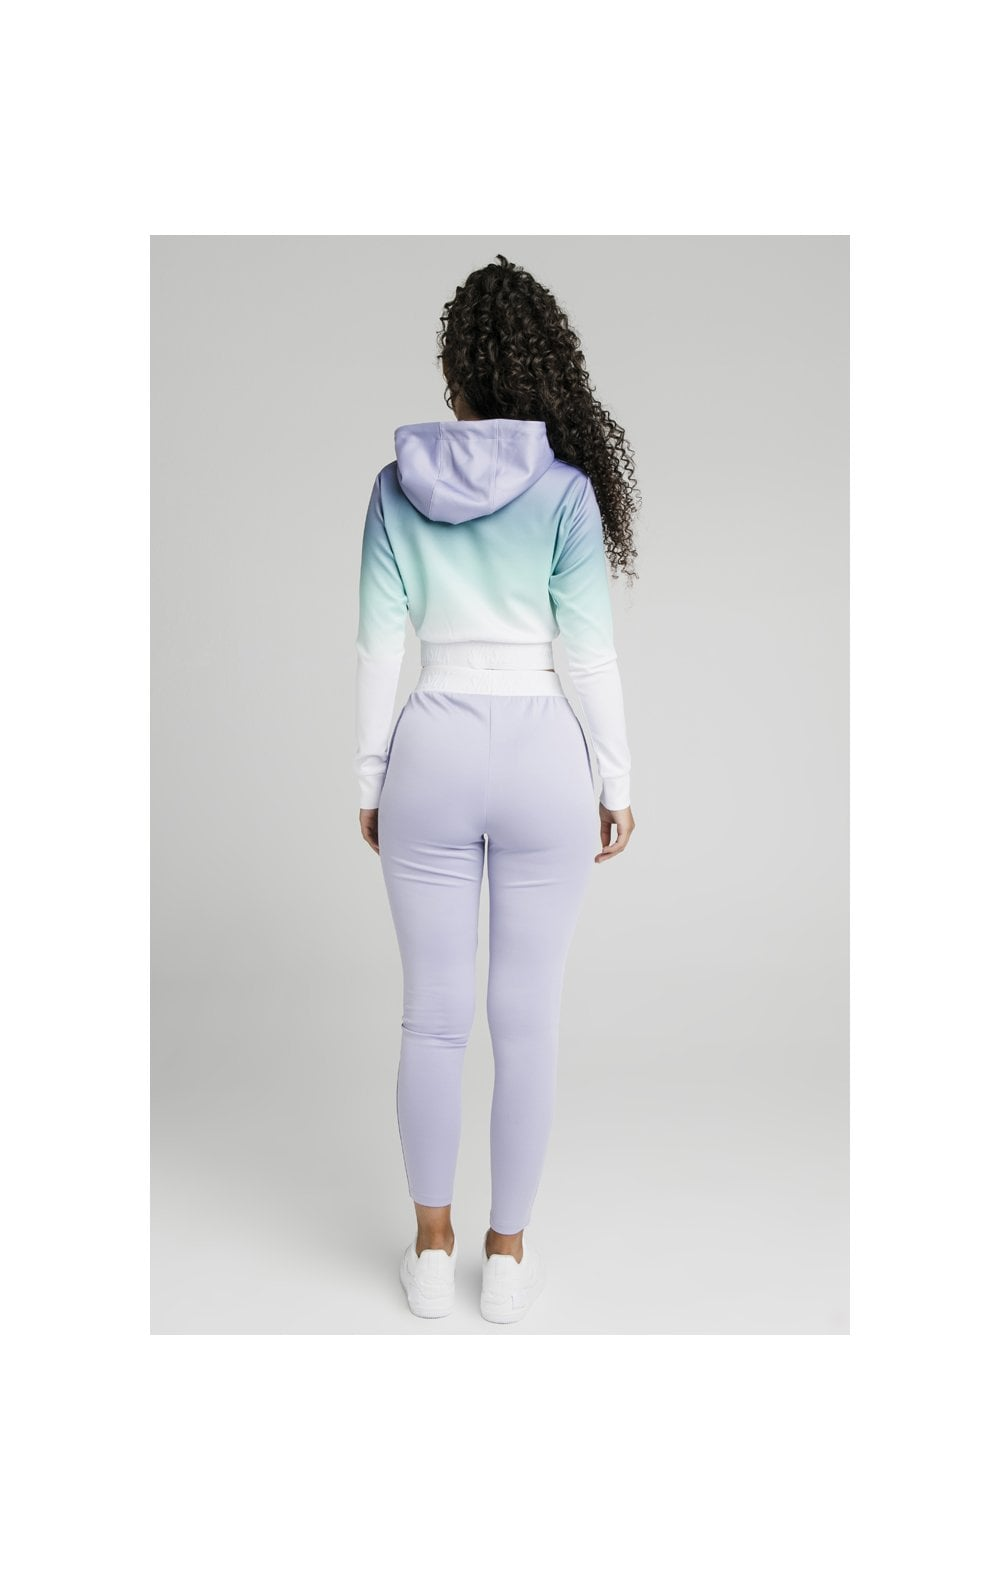 Load image into Gallery viewer, SikSilk Lilac Haze Track Pants - Lilac (9)